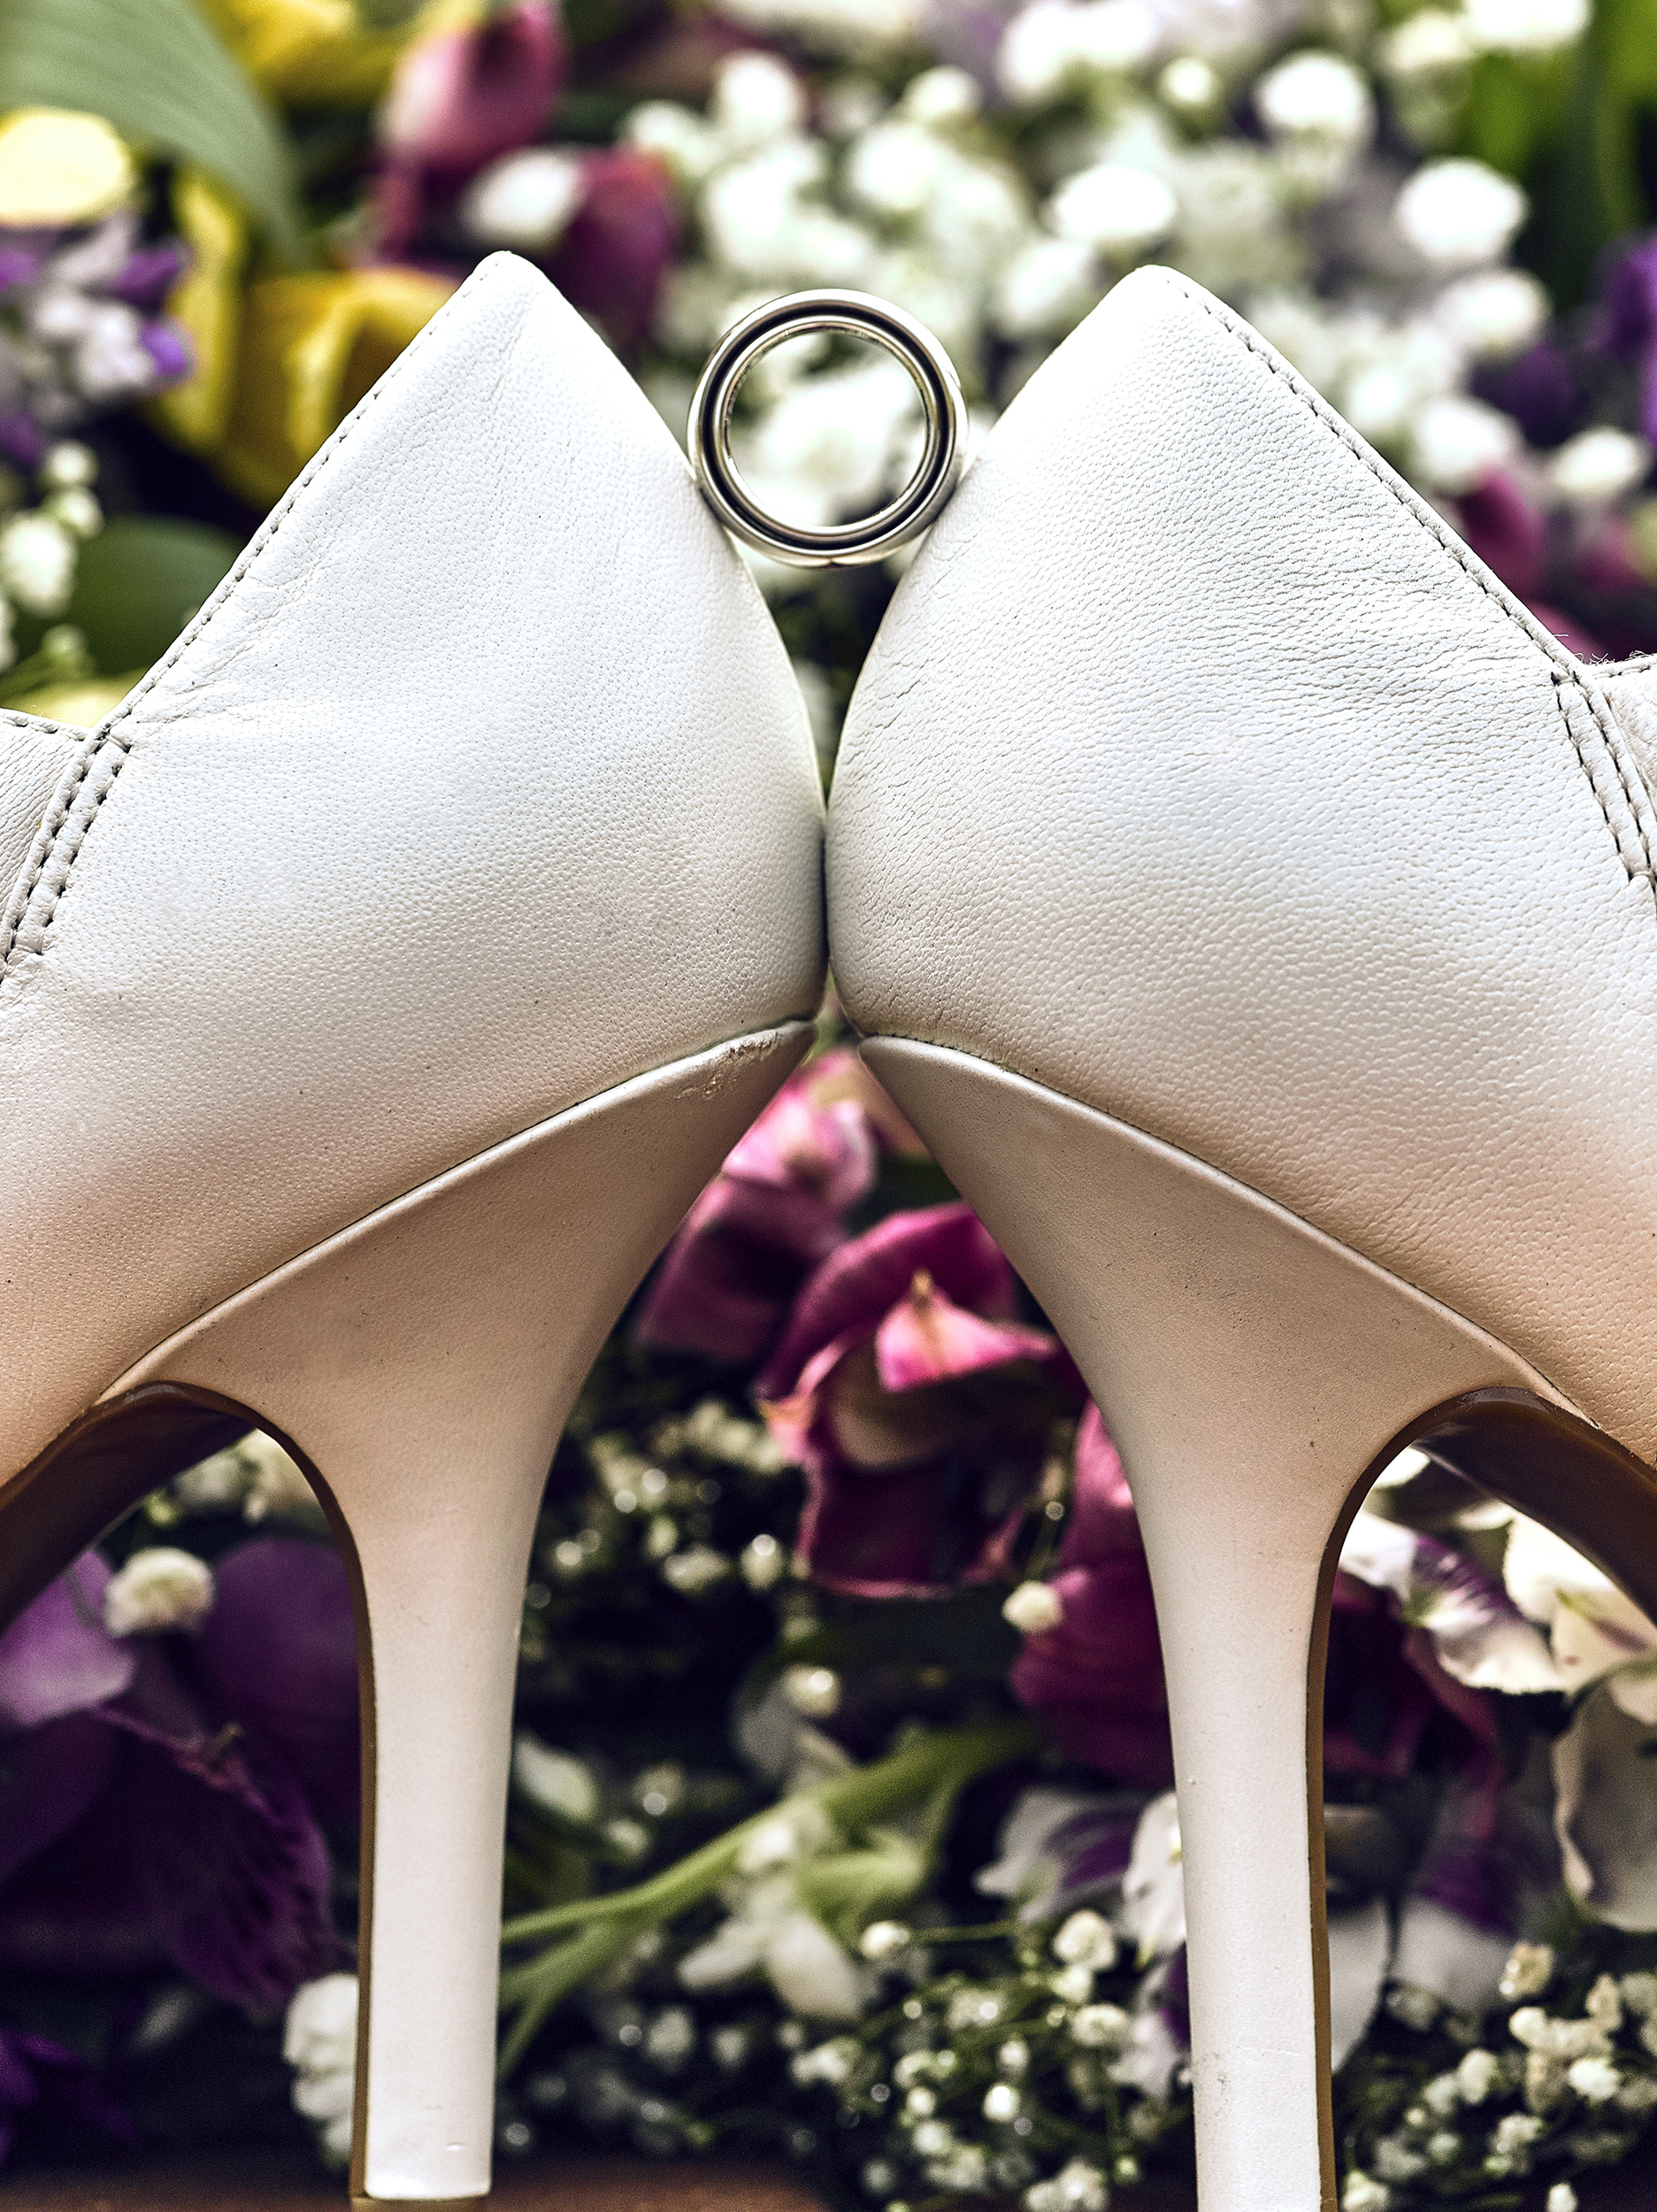 Wedding Ring Shoes and Flowers